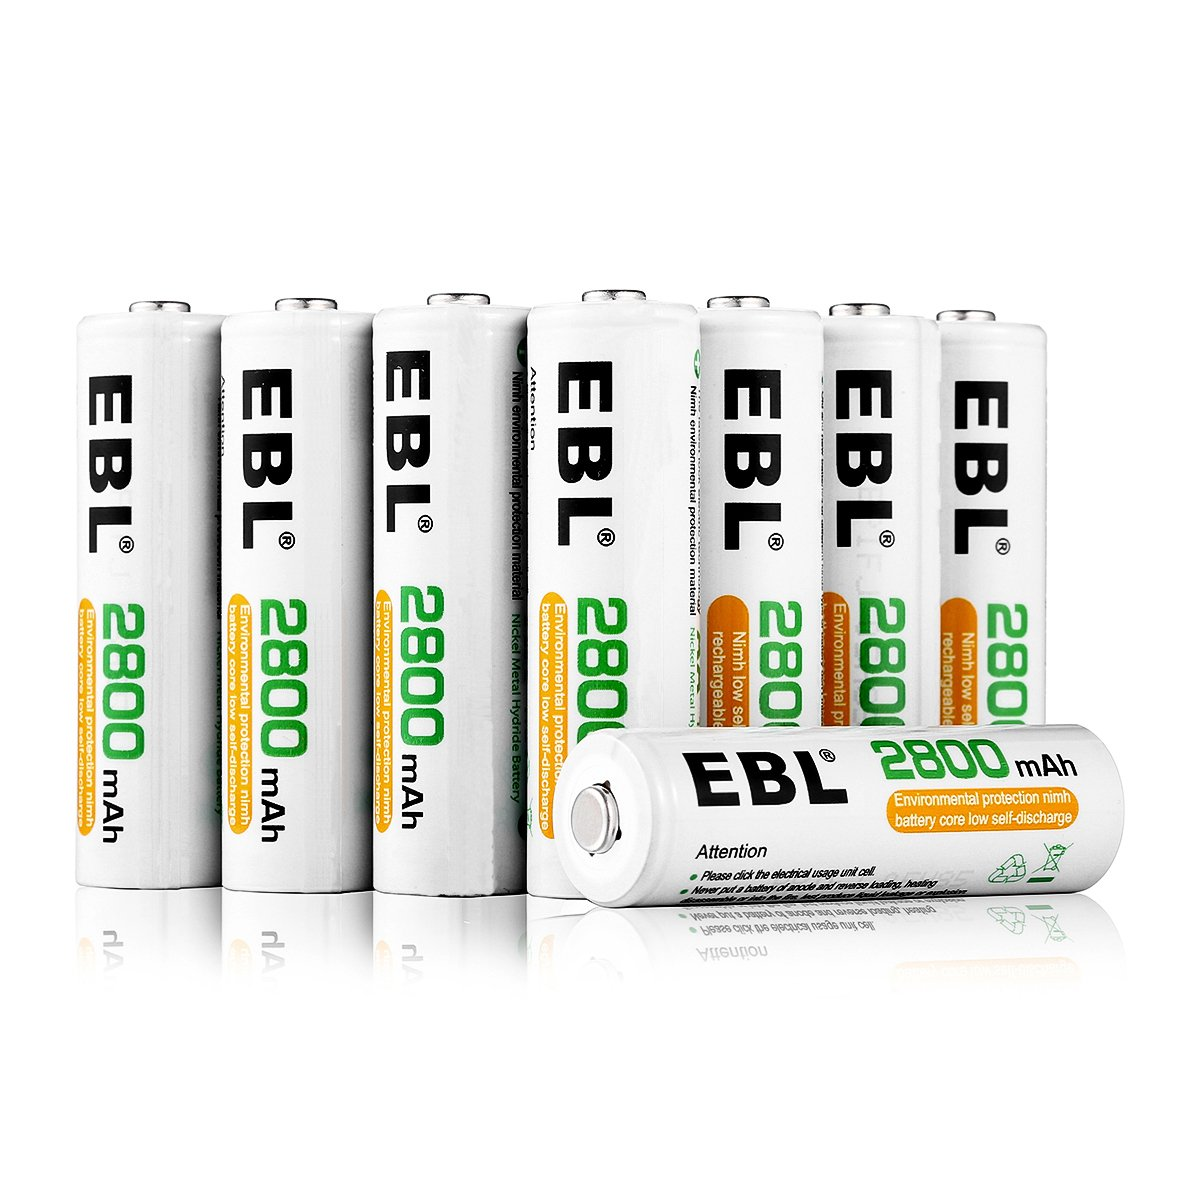 EBL AA Rechargeable Batteries Ni-MH 2800mAh, 100 Counts by EBL (Image #1)